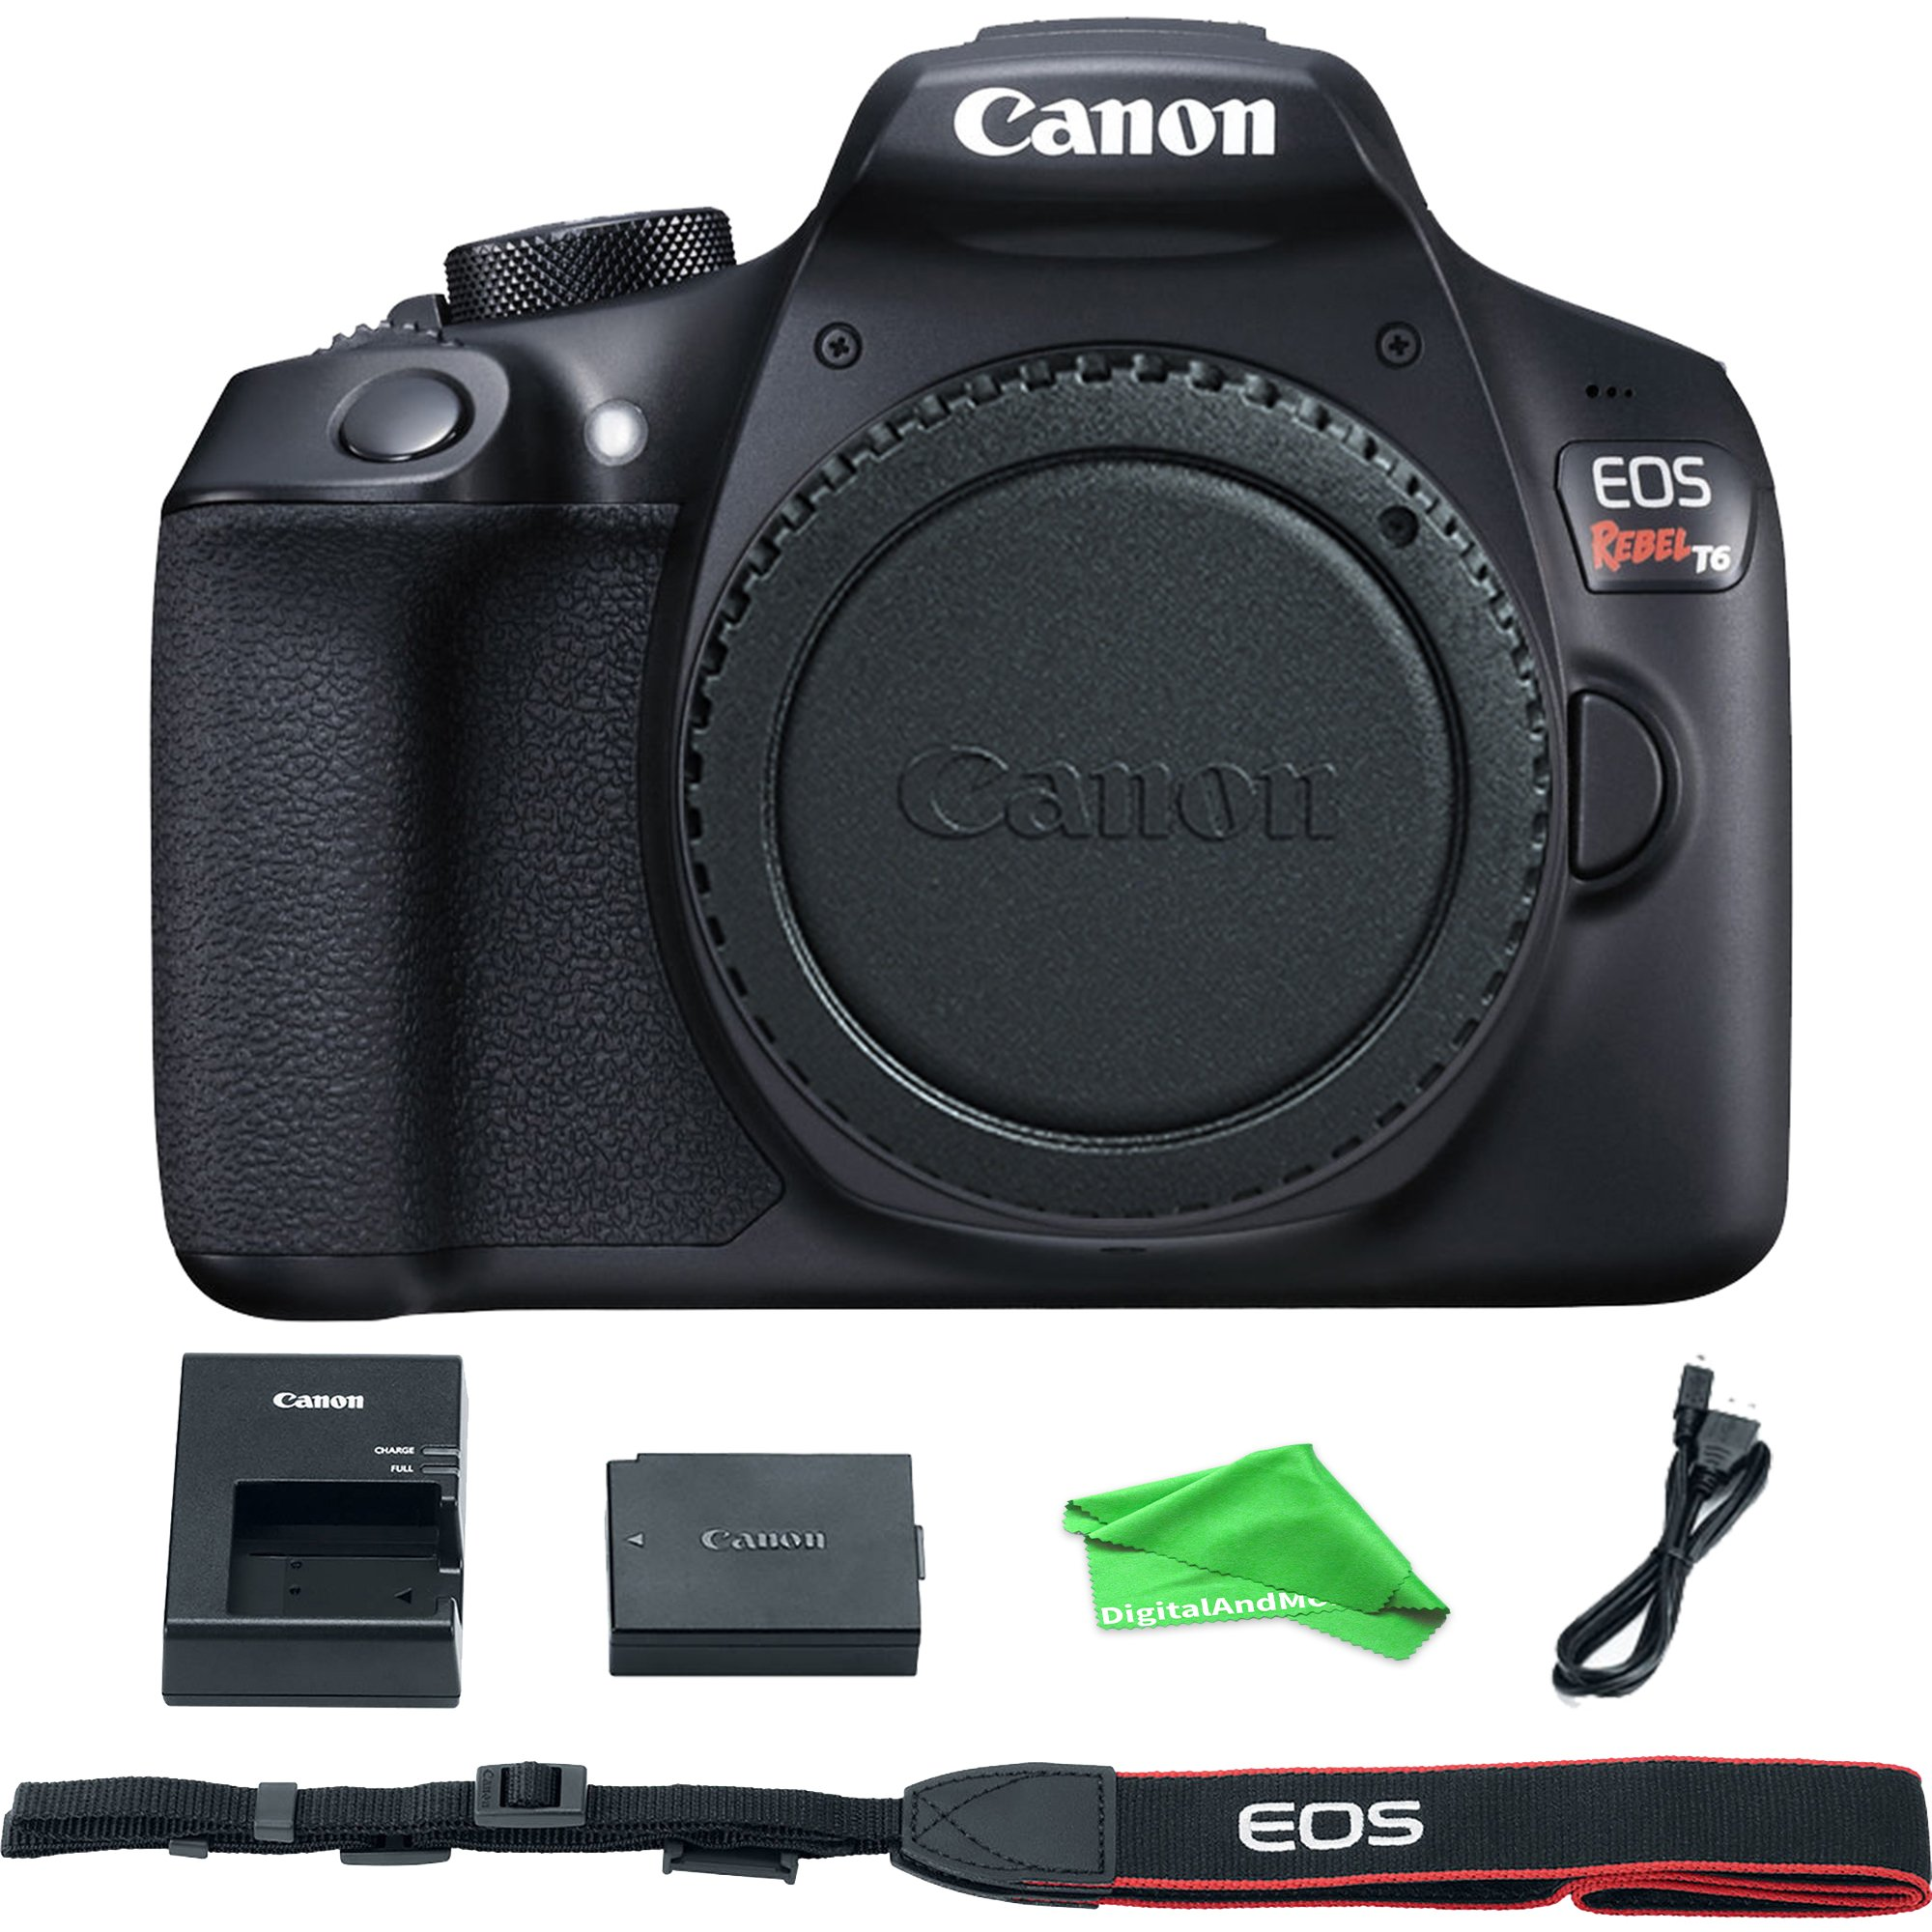 Canon EOS Rebel T6 Digital SLR Camera Body + DigitalAndMore Cloth (Body, Basic Bundle)